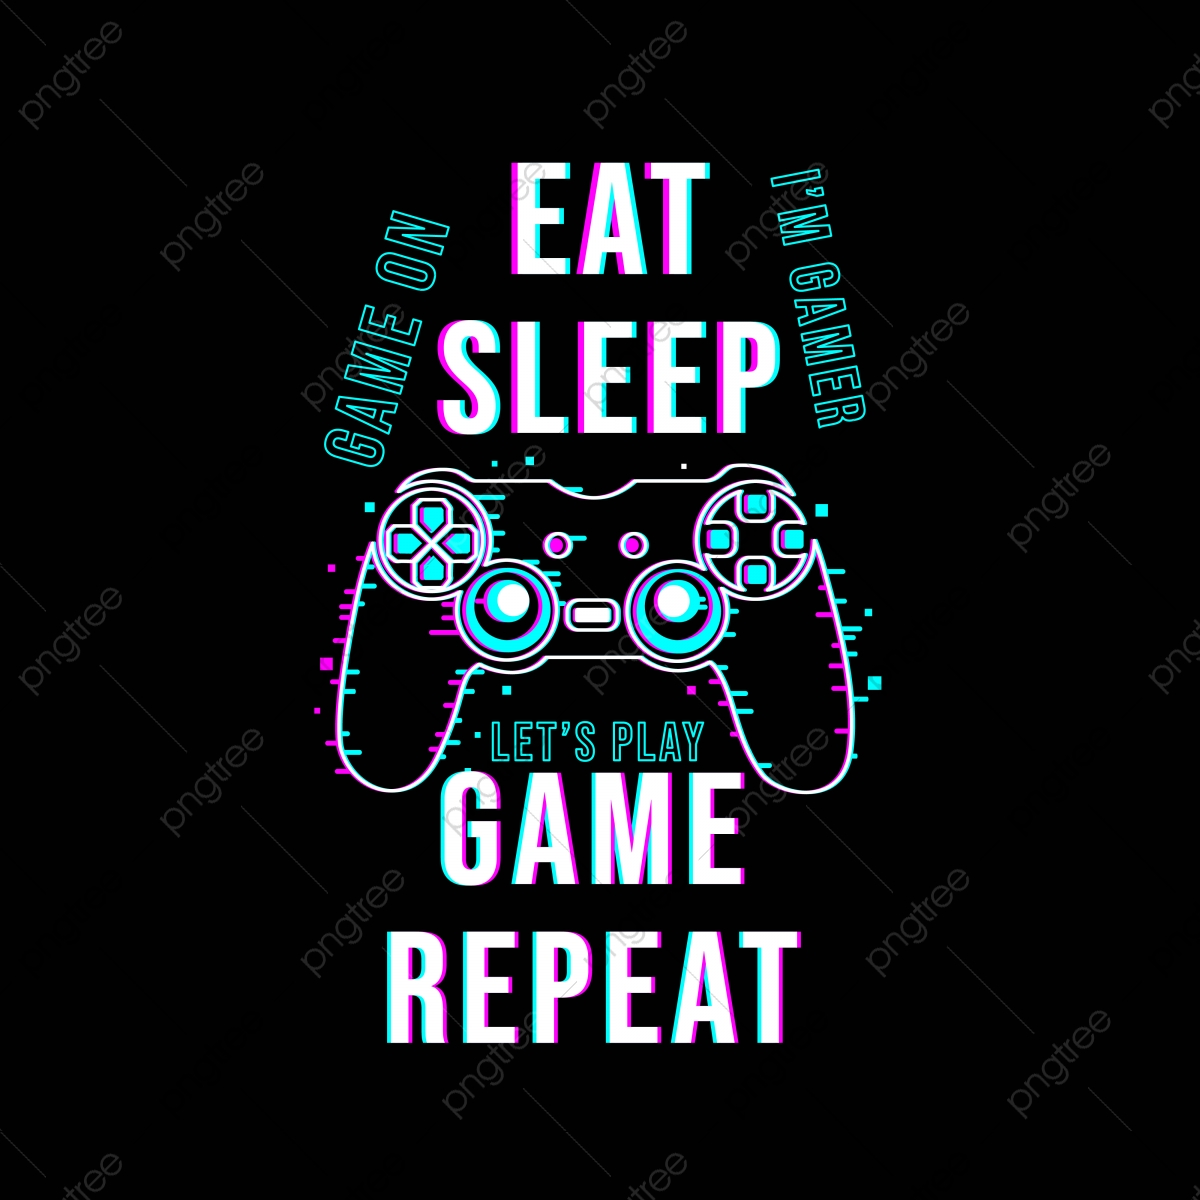 t shirt png images vector and psd files free download on pngtree https pngtree com freepng eat sleep game repeat t shirt design 5337996 html